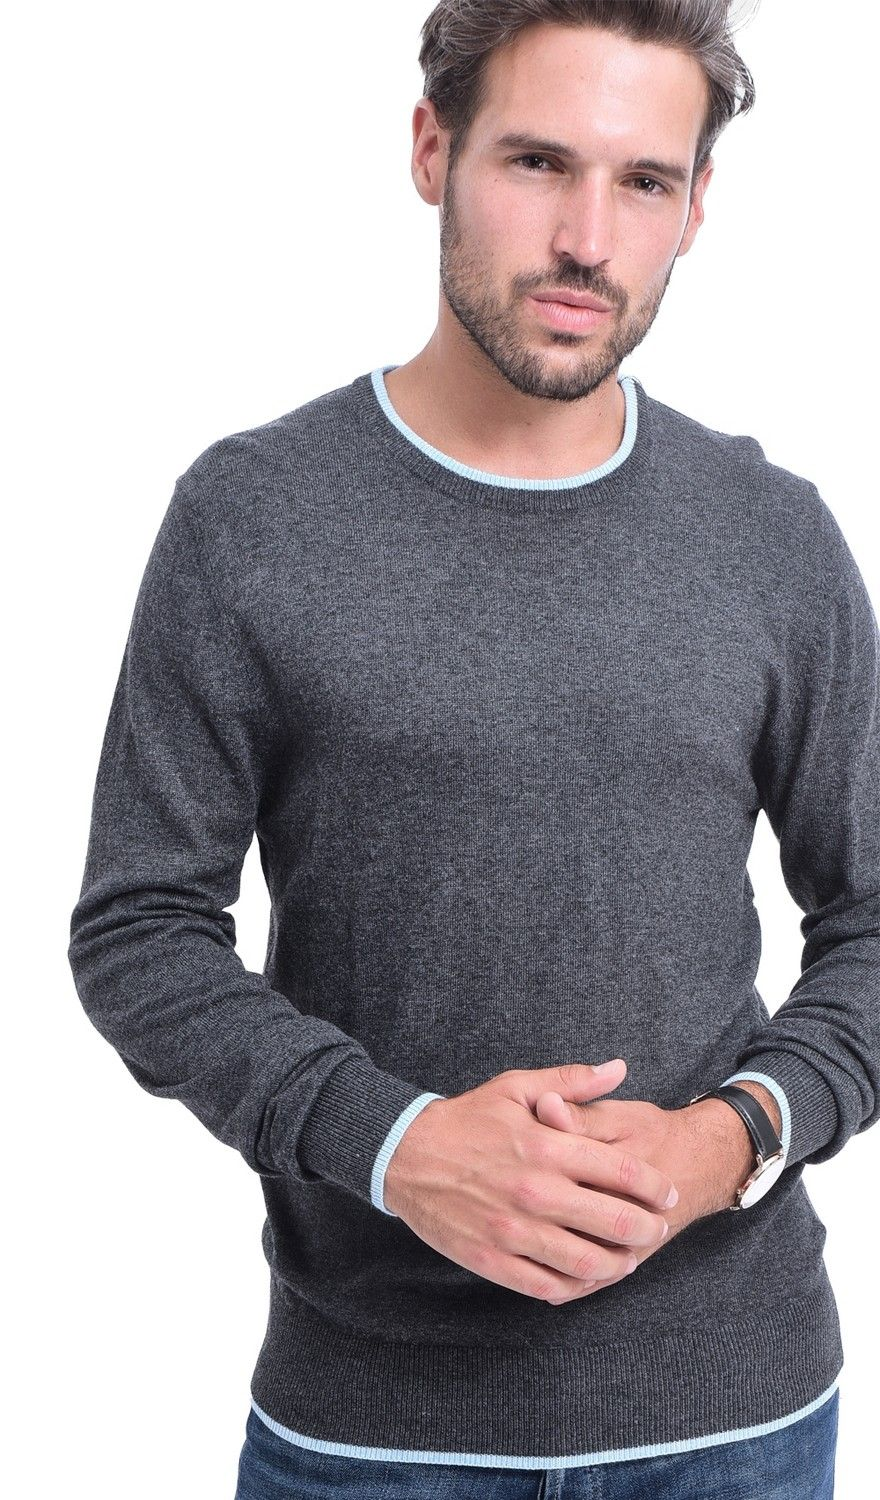 C&JO Round Neck Two-tone Sweater in Grey